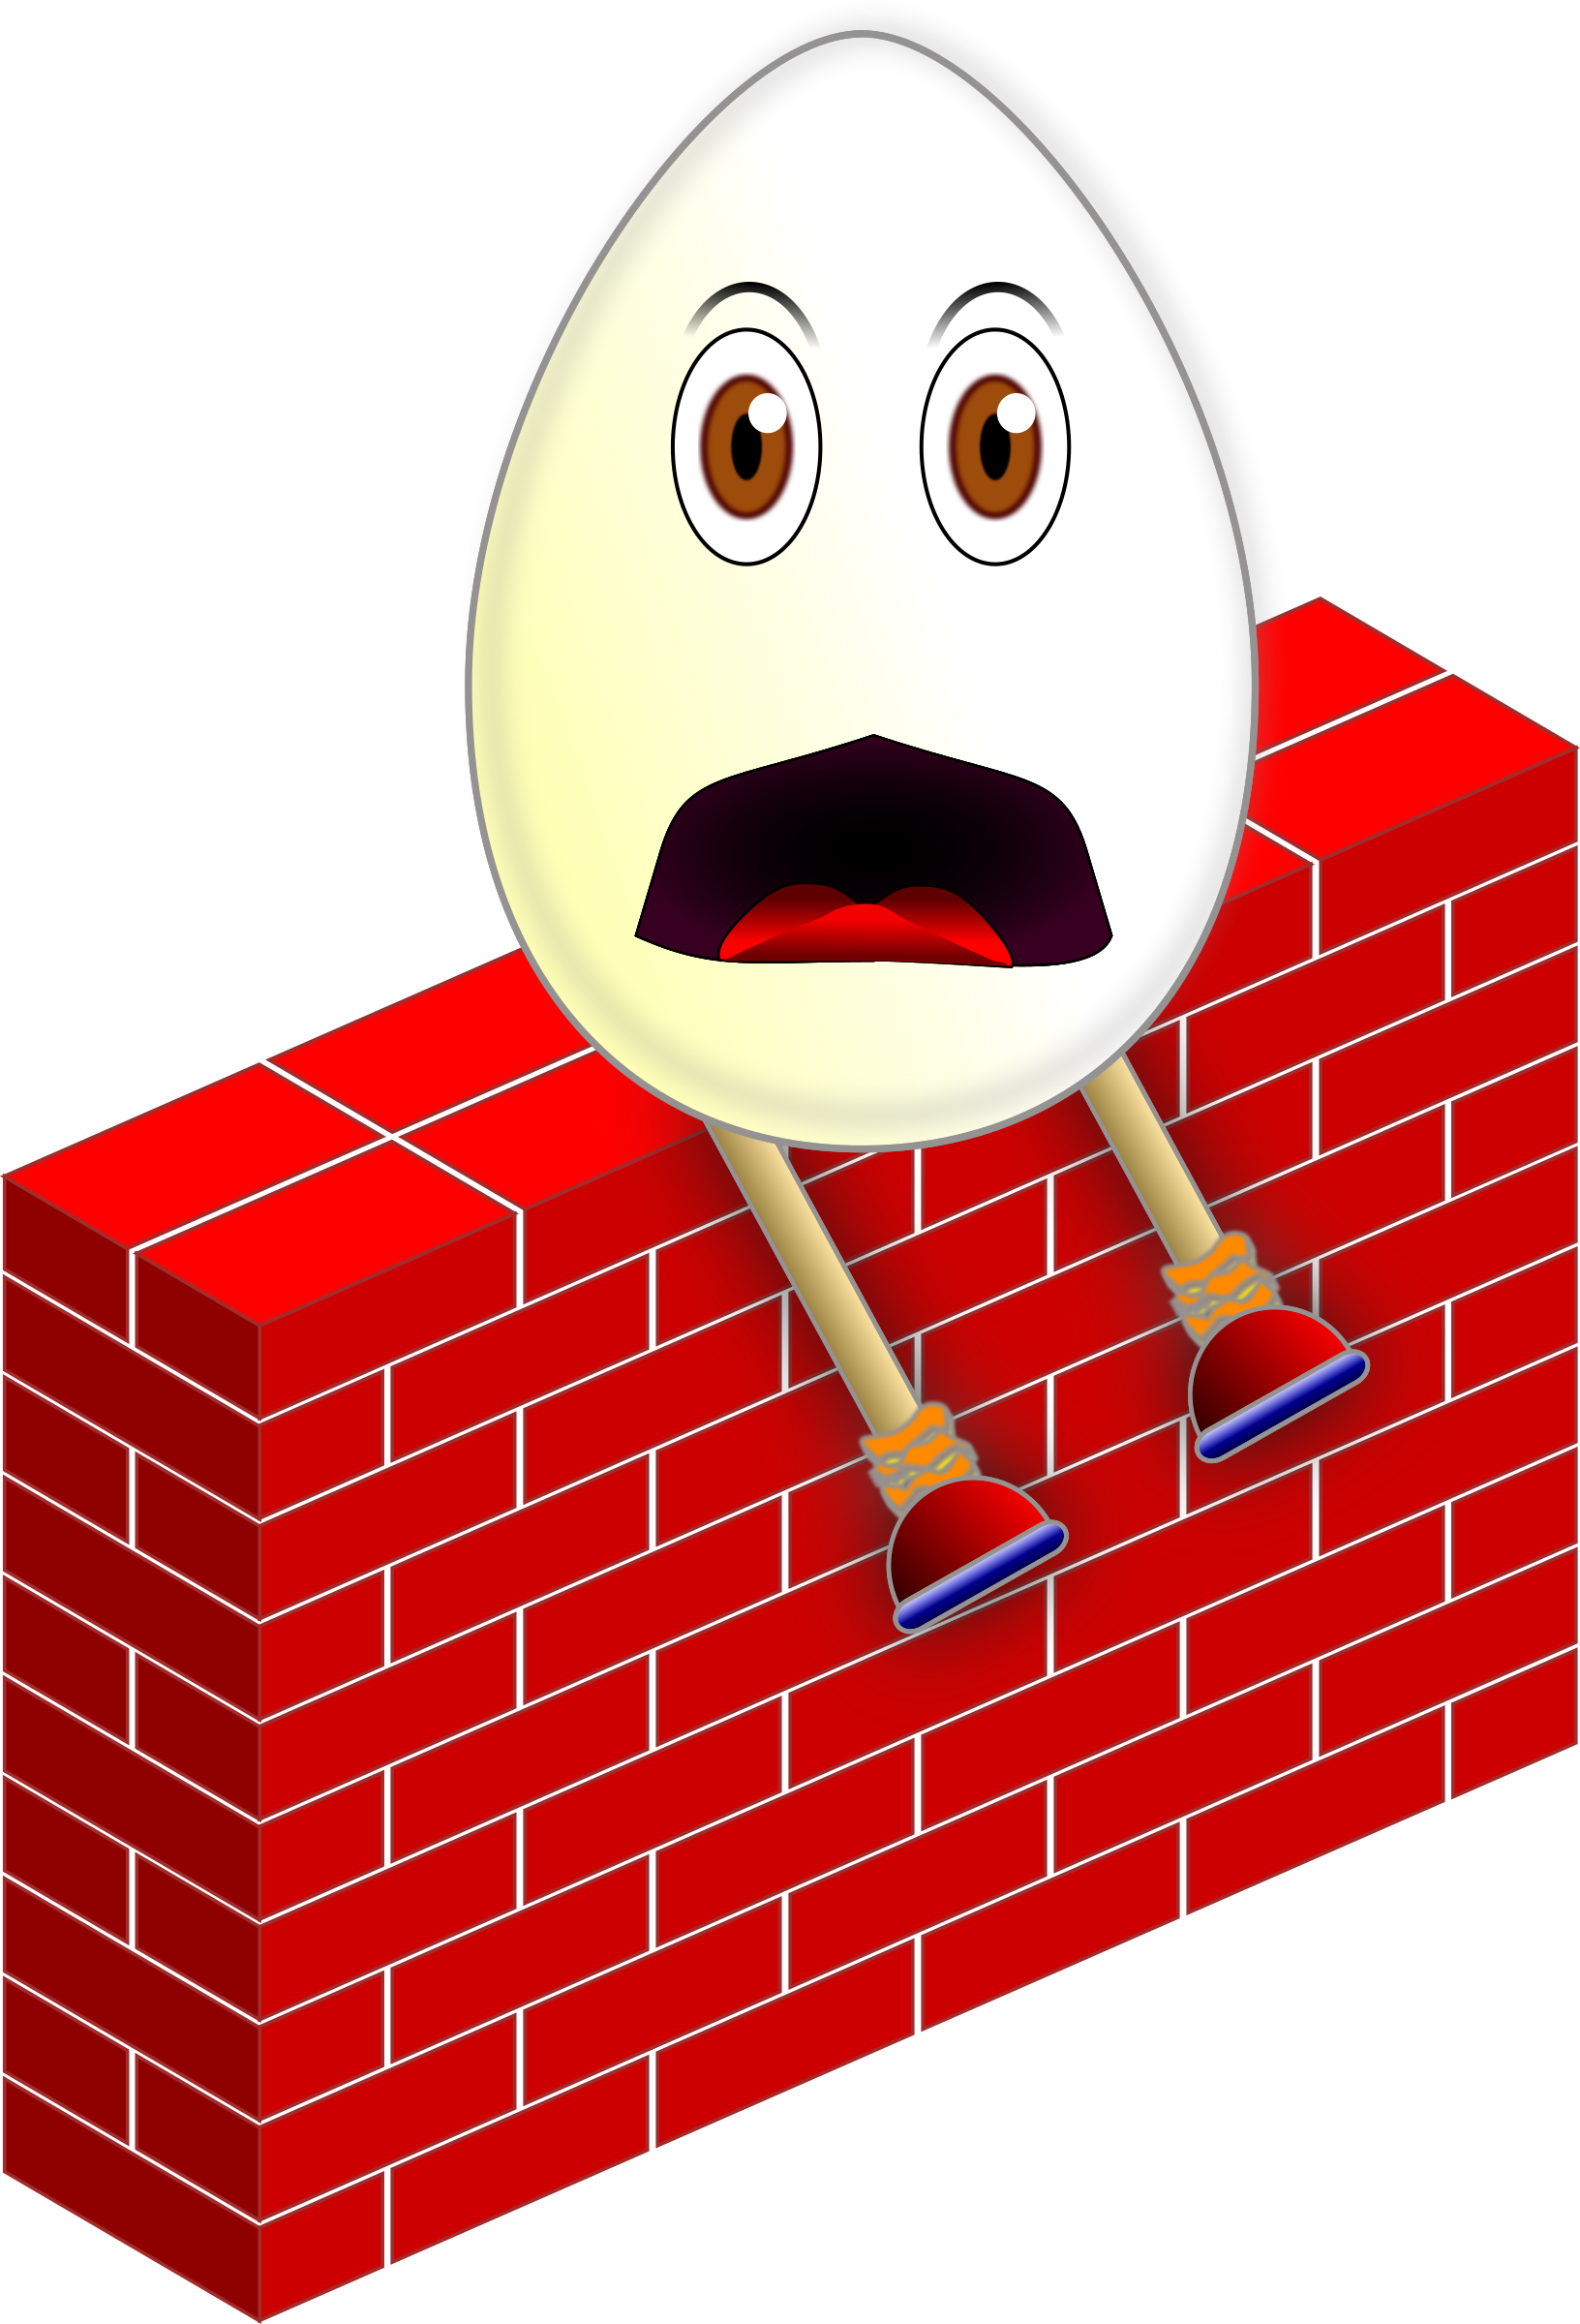 Humpty dumpty clipart original. On a wall big